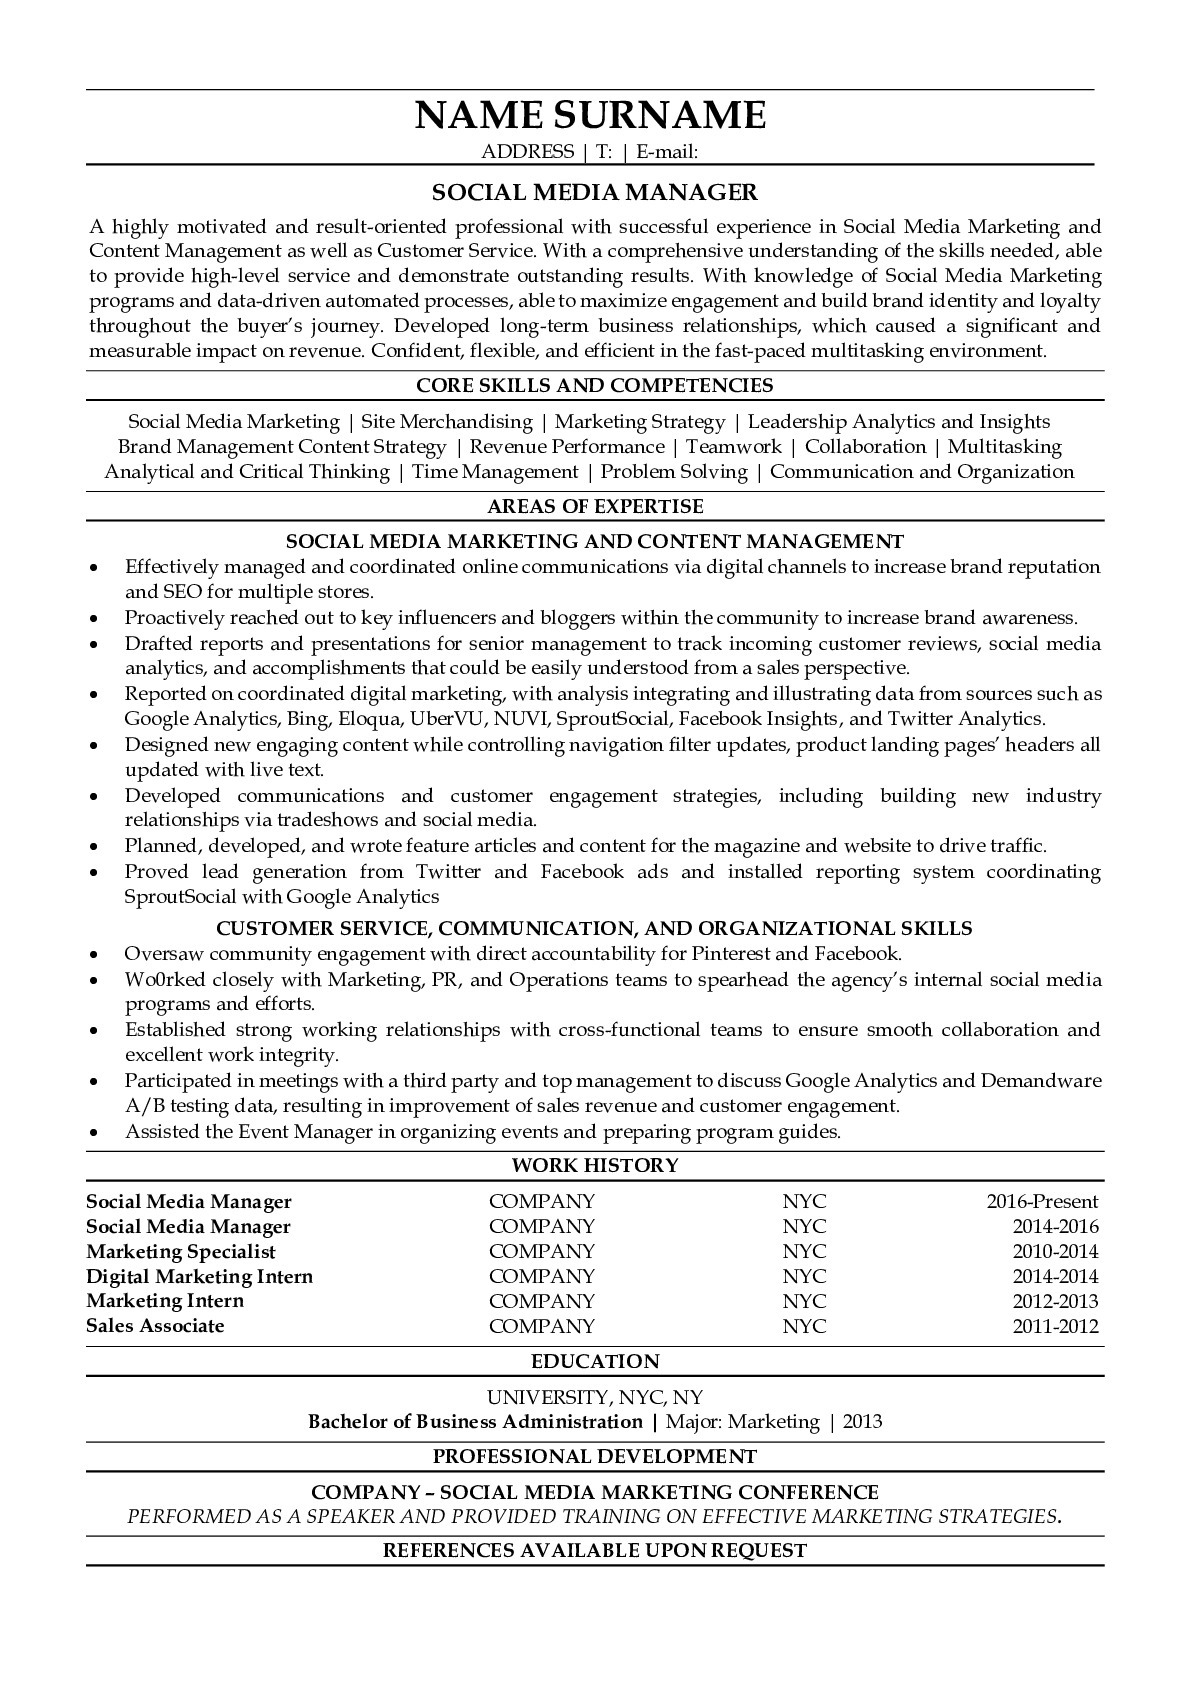 Resume Example for Social Media Manager